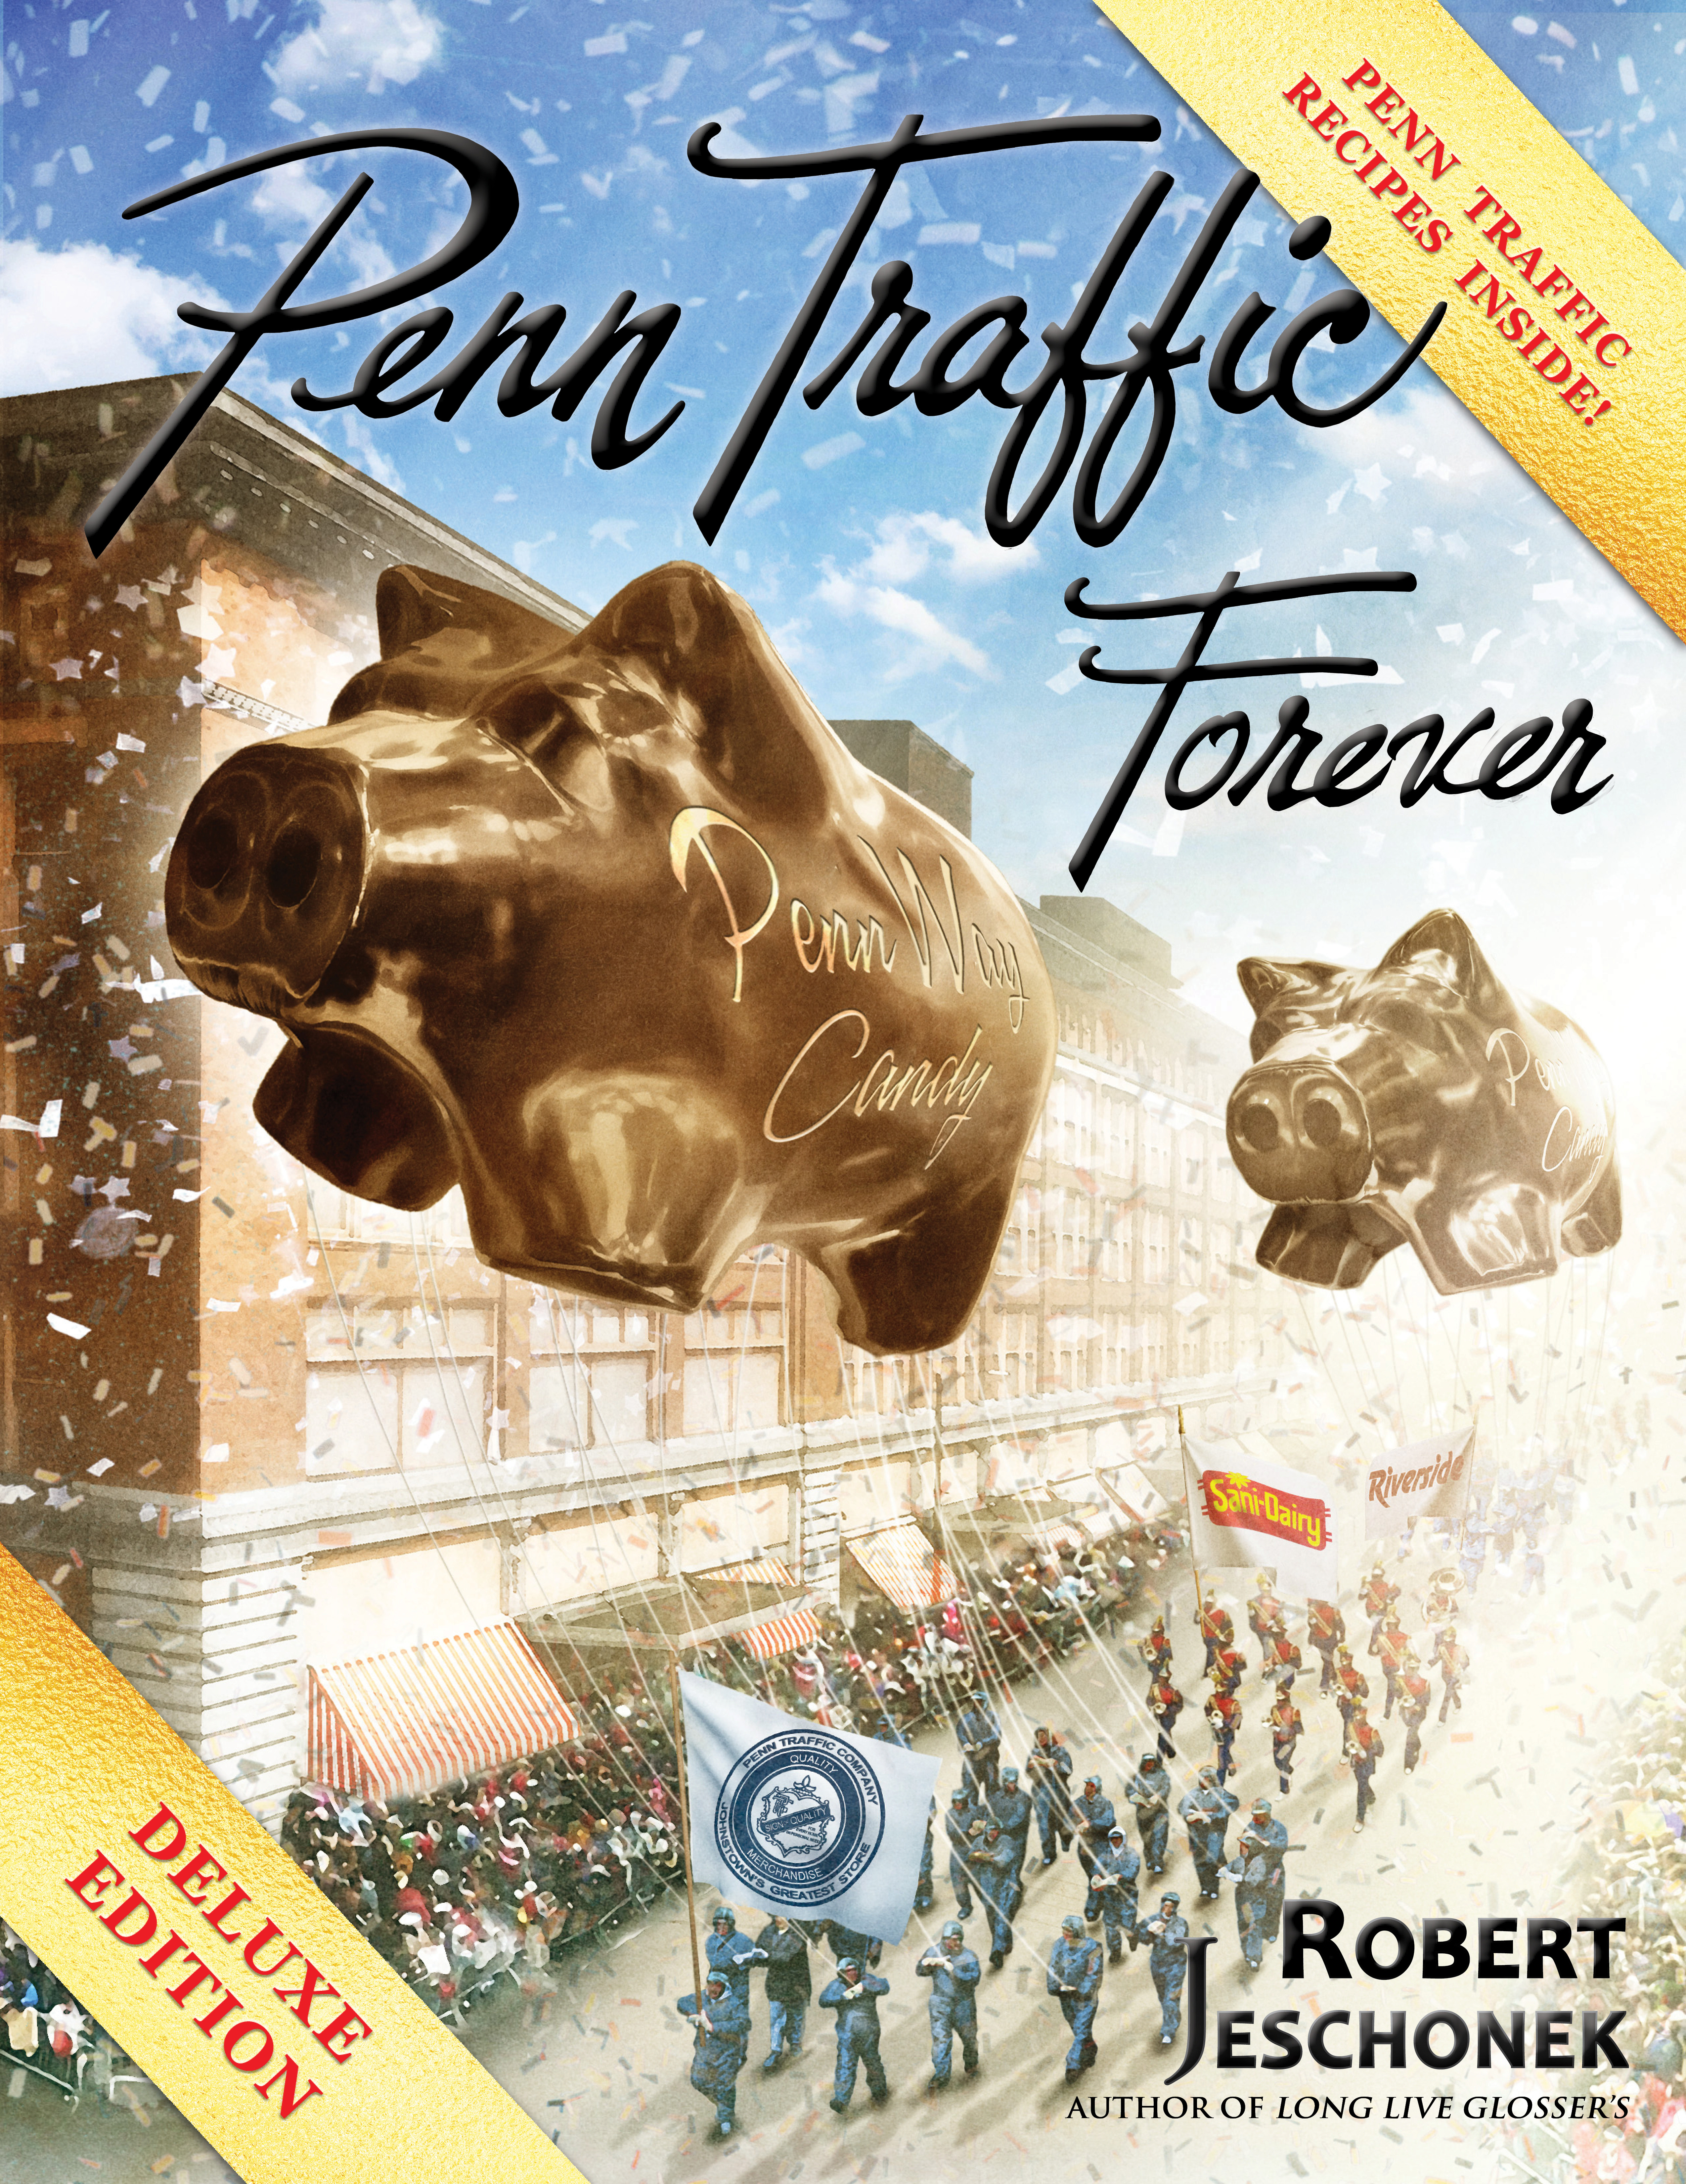 Penn Traffic Forever Deluxe Edition Ebook Cover